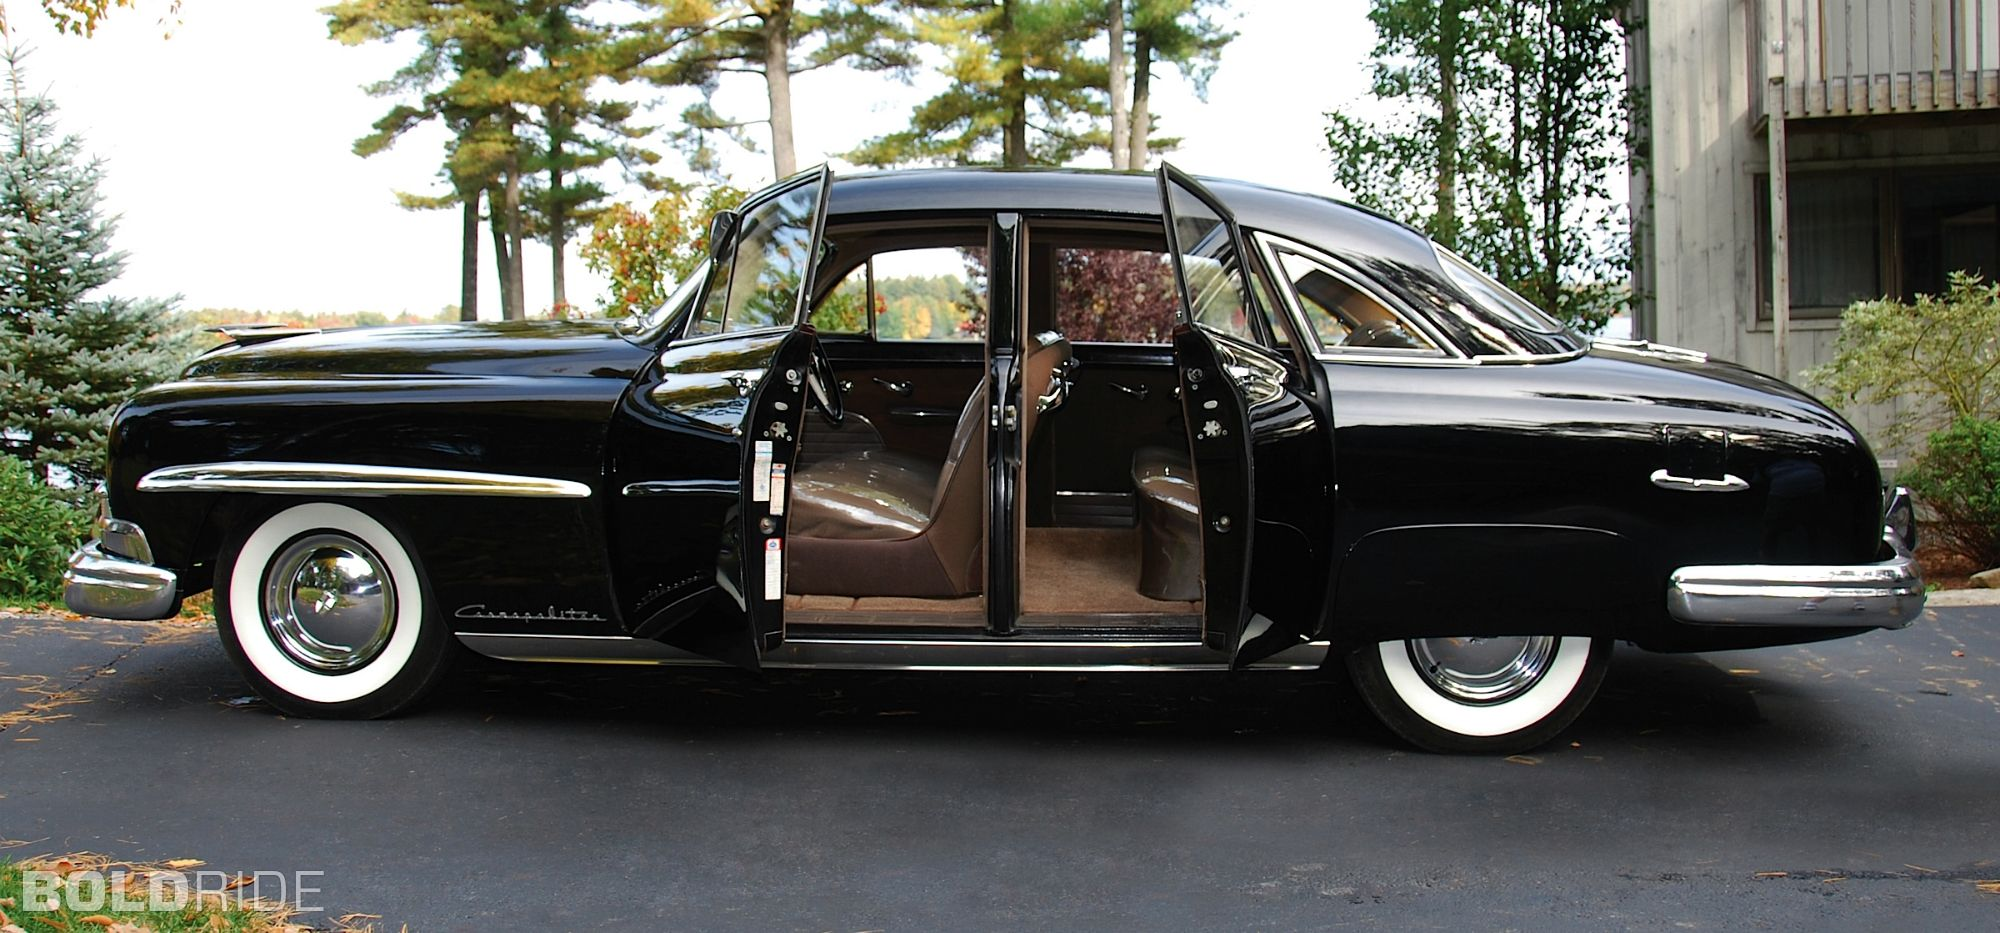 1950 lincoln | 1950 Lincoln Cosmopolitan Sport Sedan Images | Pictures and Videos